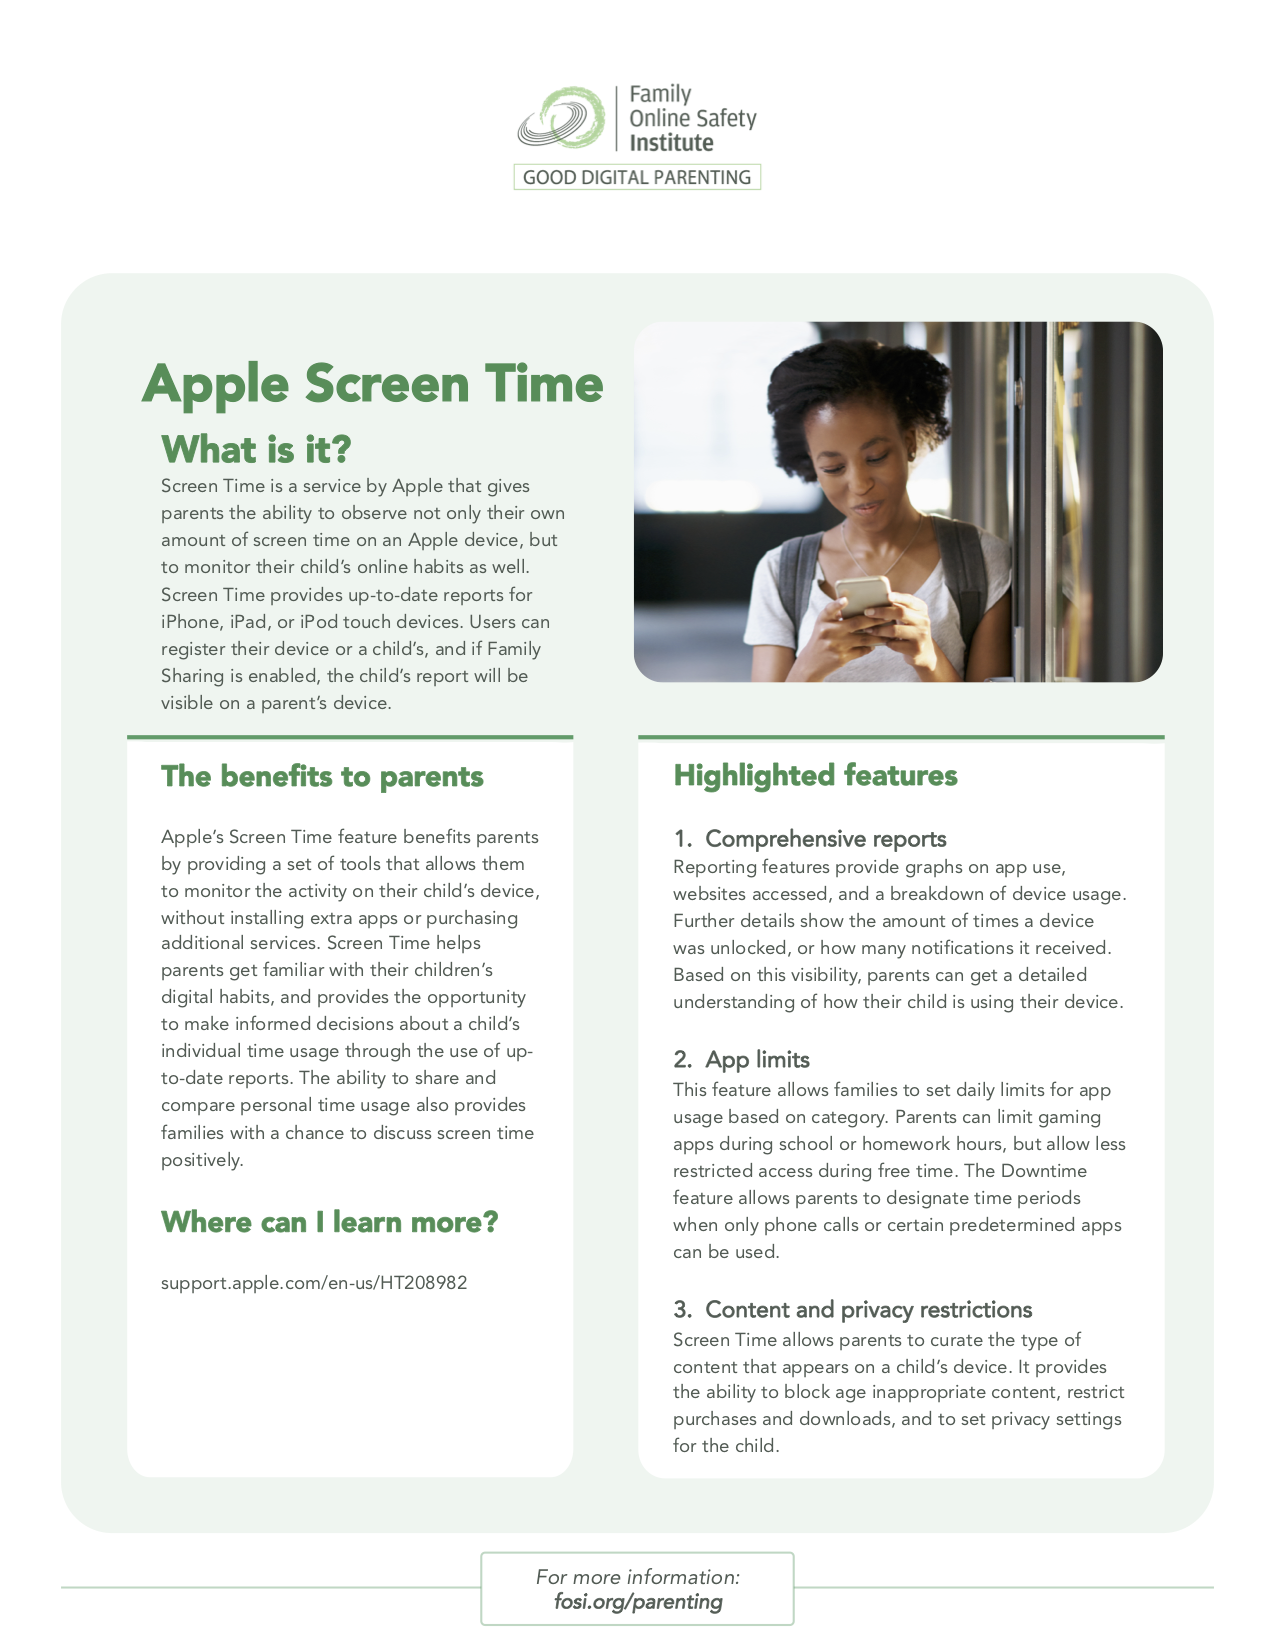 Tip Sheet What is Apple Screen Time?